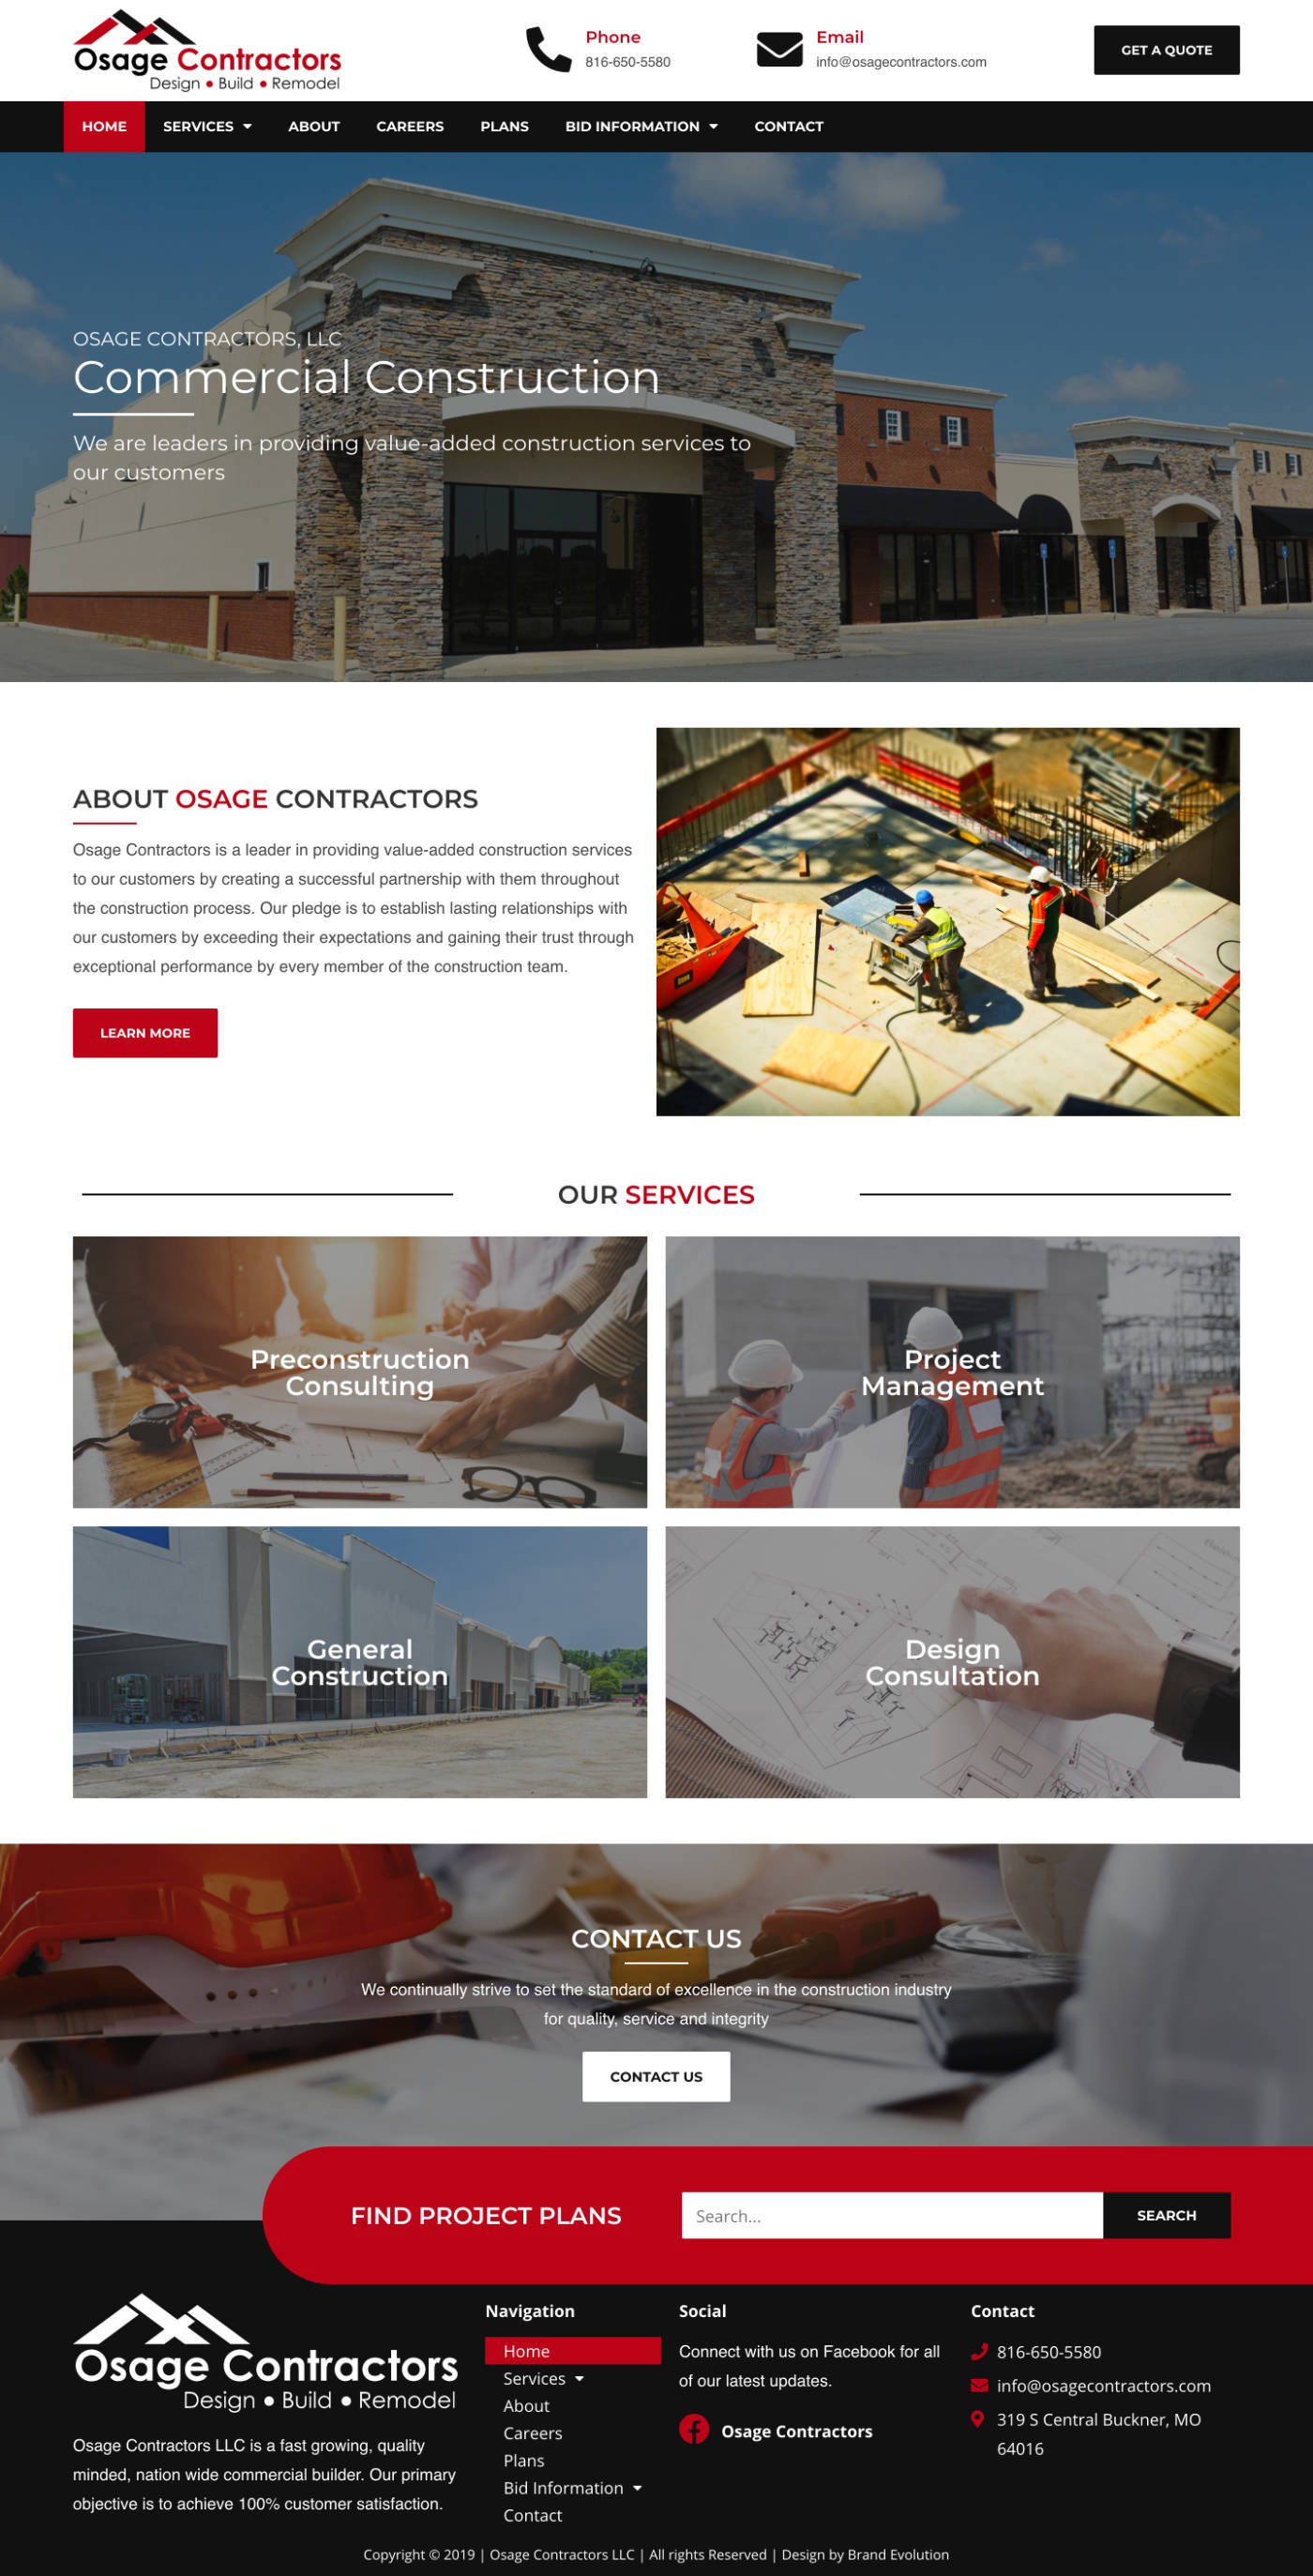 Osage Contractors Homepage